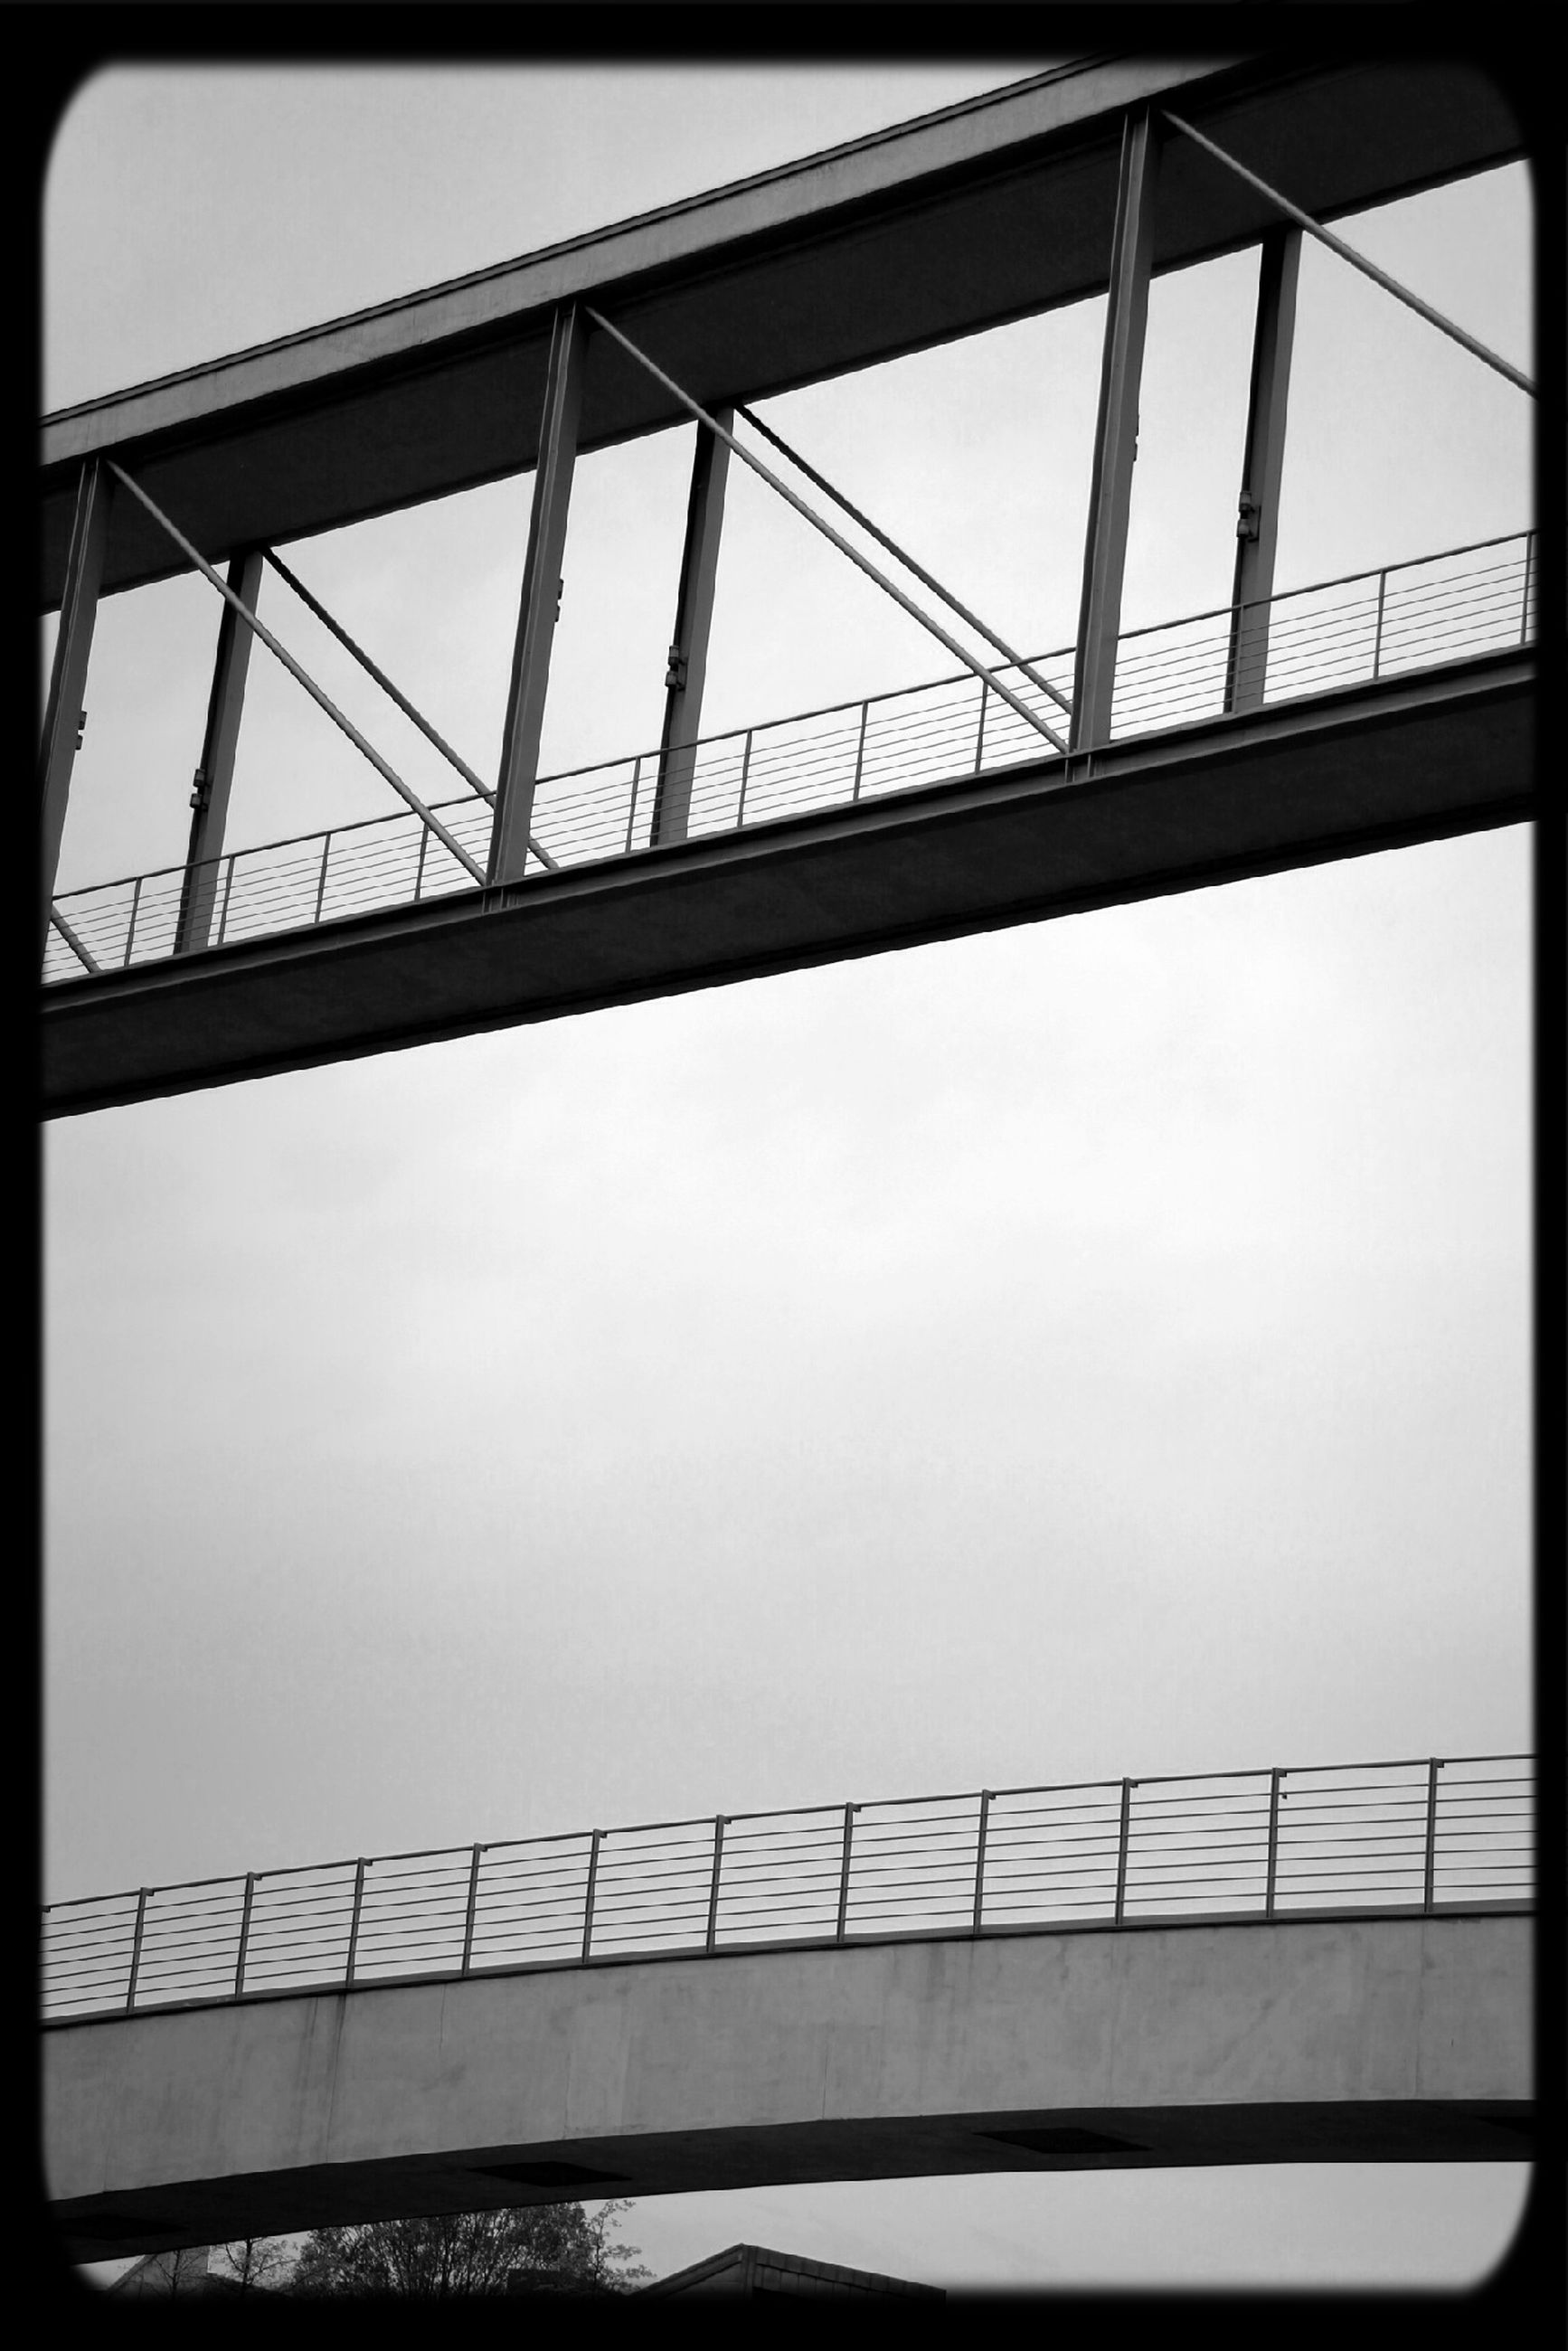 railing, metal, connection, bridge - man made structure, built structure, sky, architecture, low angle view, metallic, transfer print, engineering, auto post production filter, day, no people, bridge, outdoors, transportation, fence, cloud - sky, sunlight